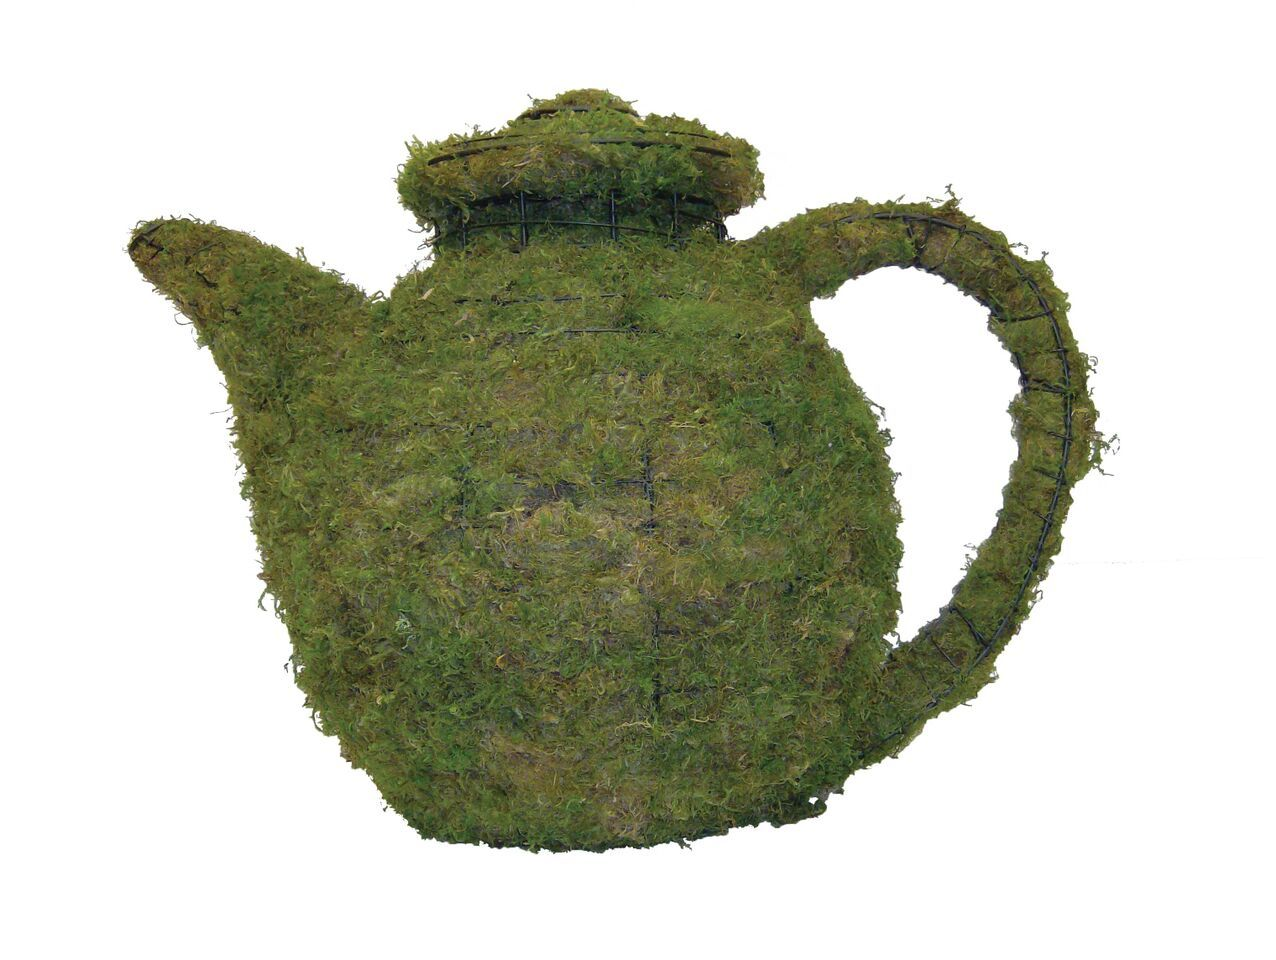 Teapot steel topiary frame filled with green dyed sphagnum moss - Henderson Garden Supply